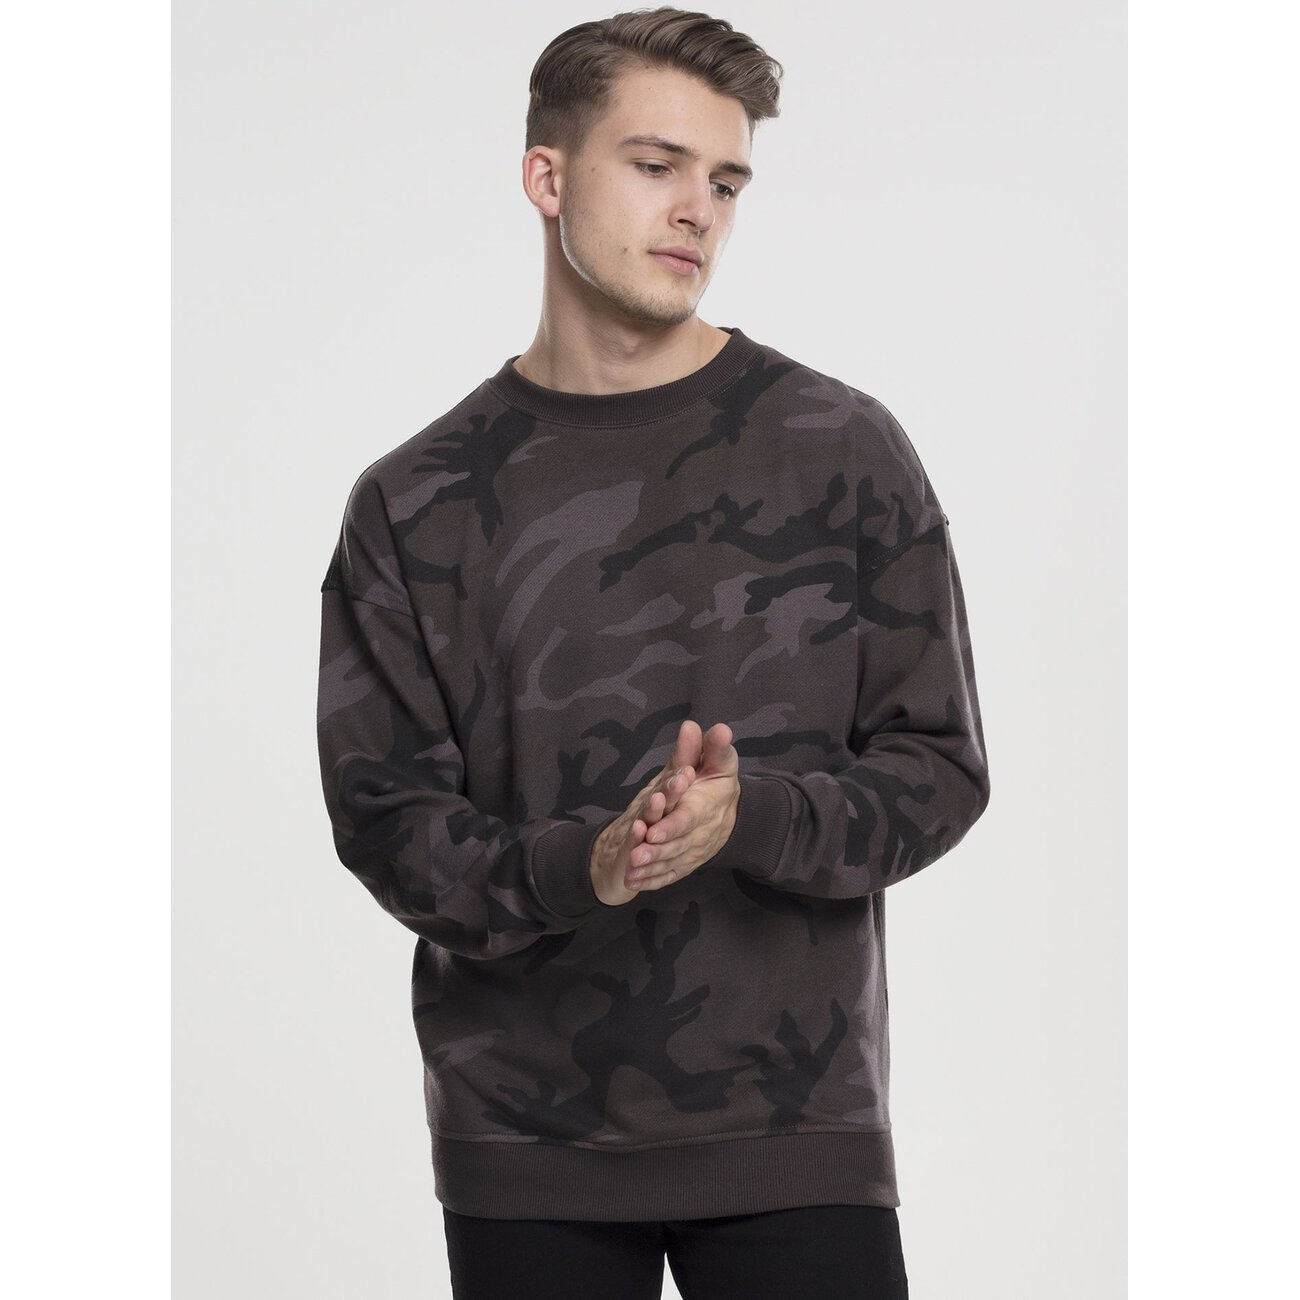 urban classics sweatshirt herren camouflage print crewneck. Black Bedroom Furniture Sets. Home Design Ideas